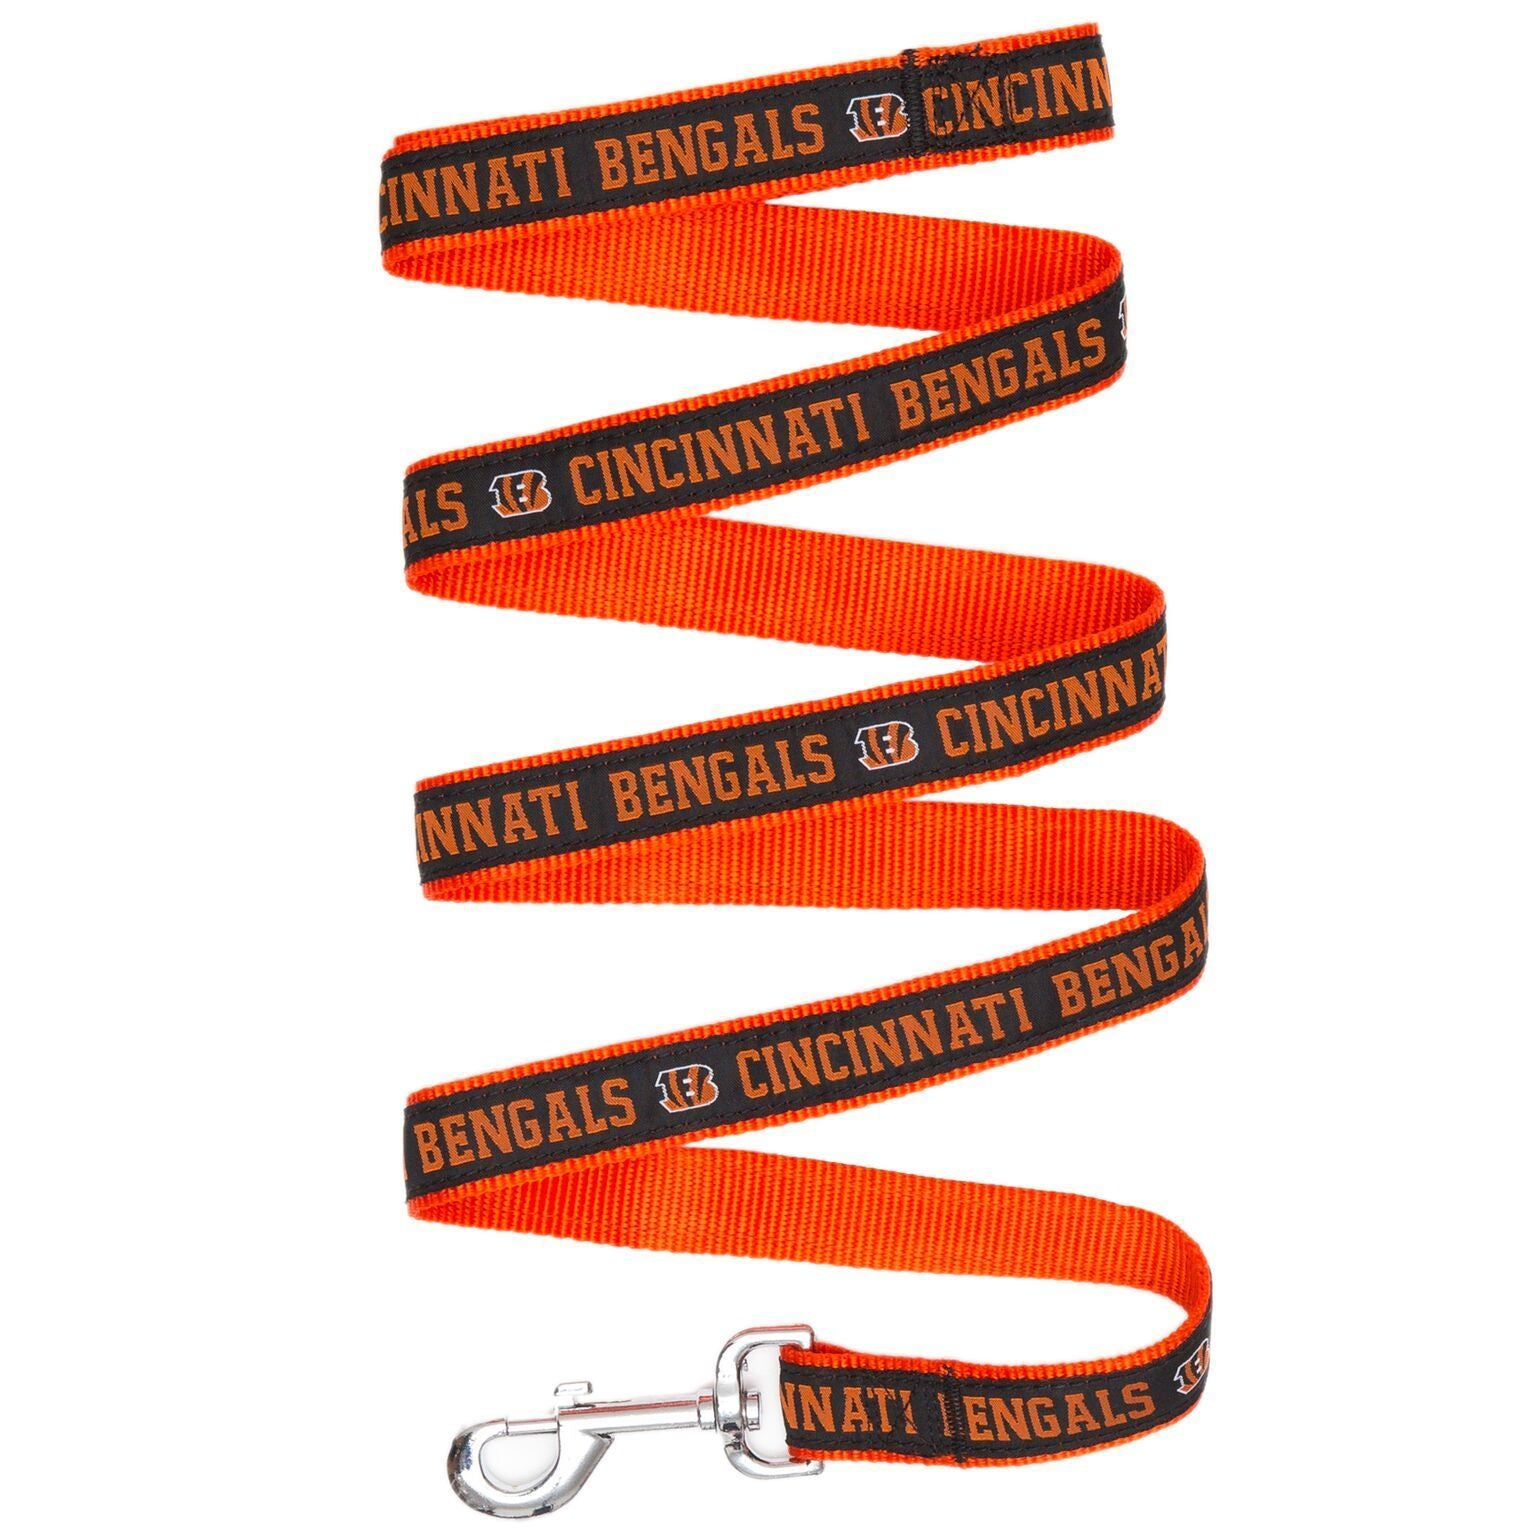 Cincinnati Bengals Puppy Dog Football Jersey Collar Leash - Jersey Champs